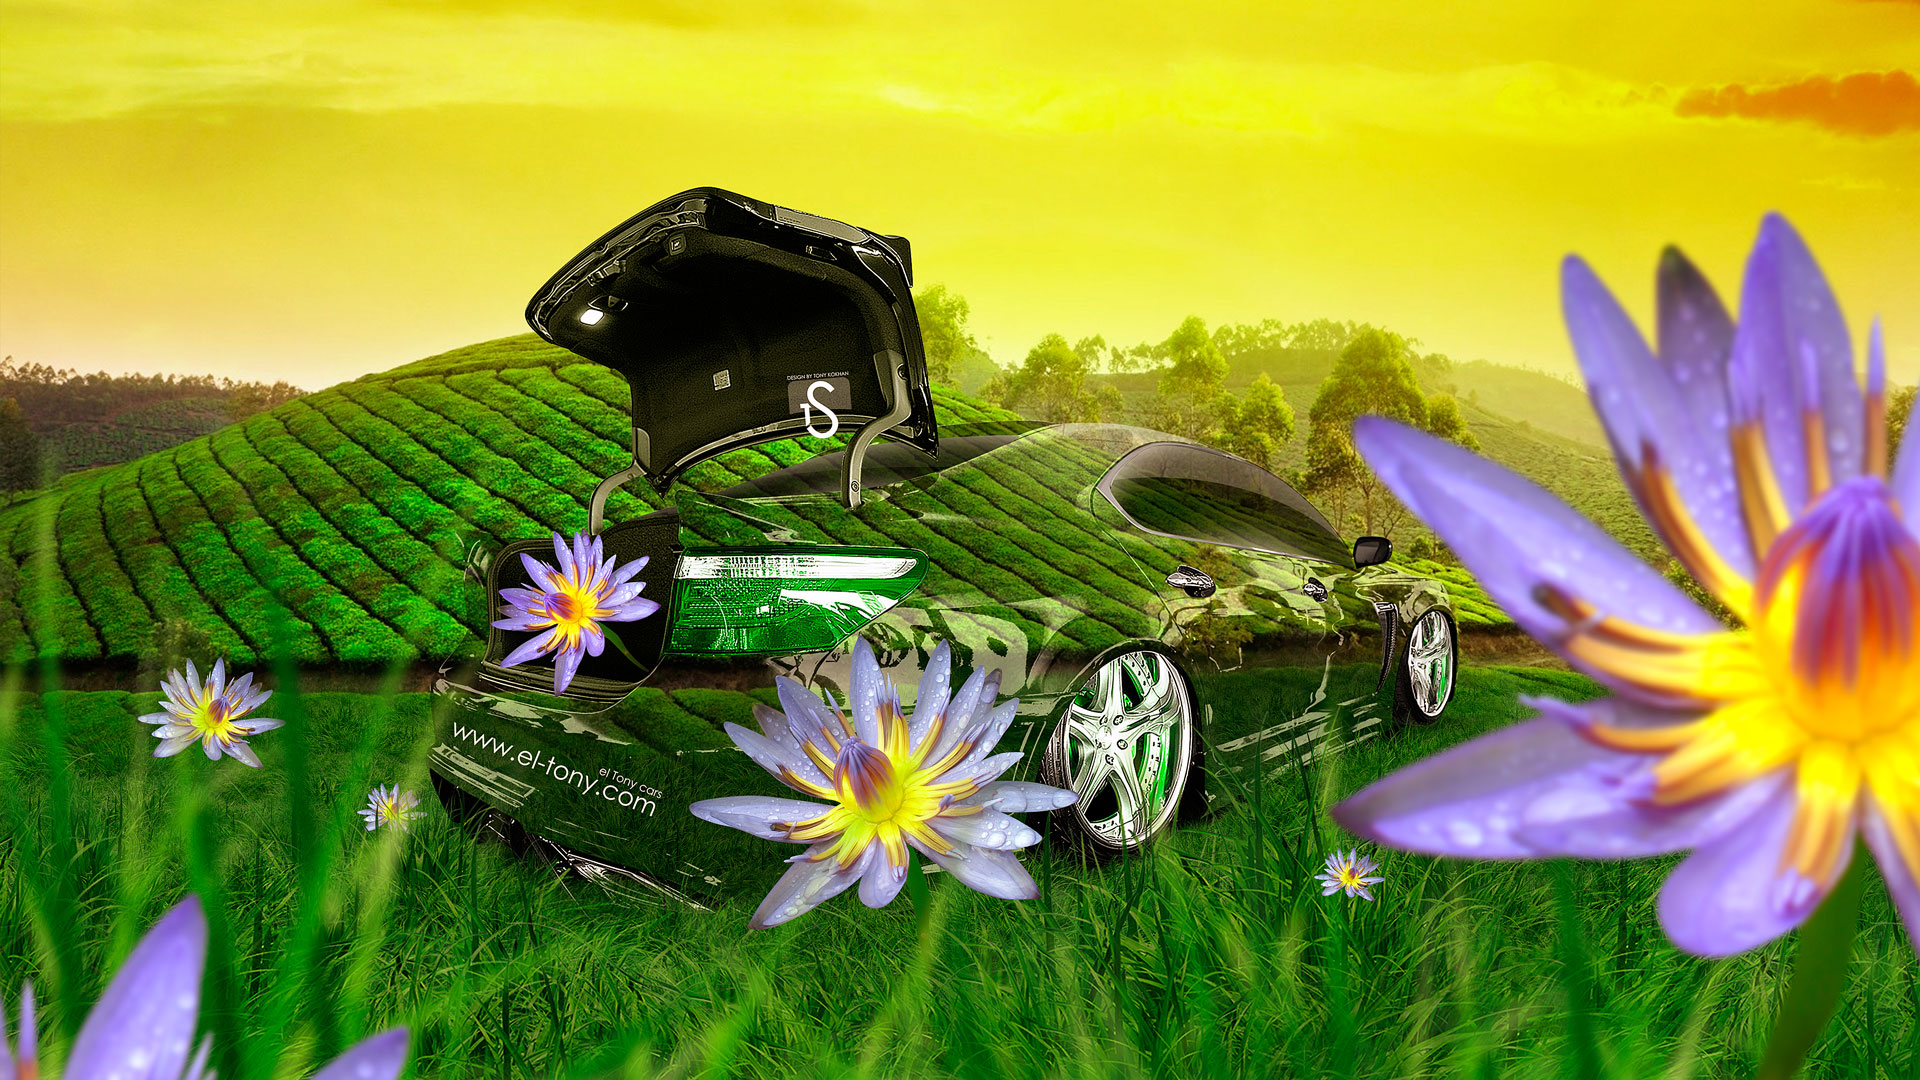 Delicieux Lexus LS460 Crystal Nature Flowers Car 2014